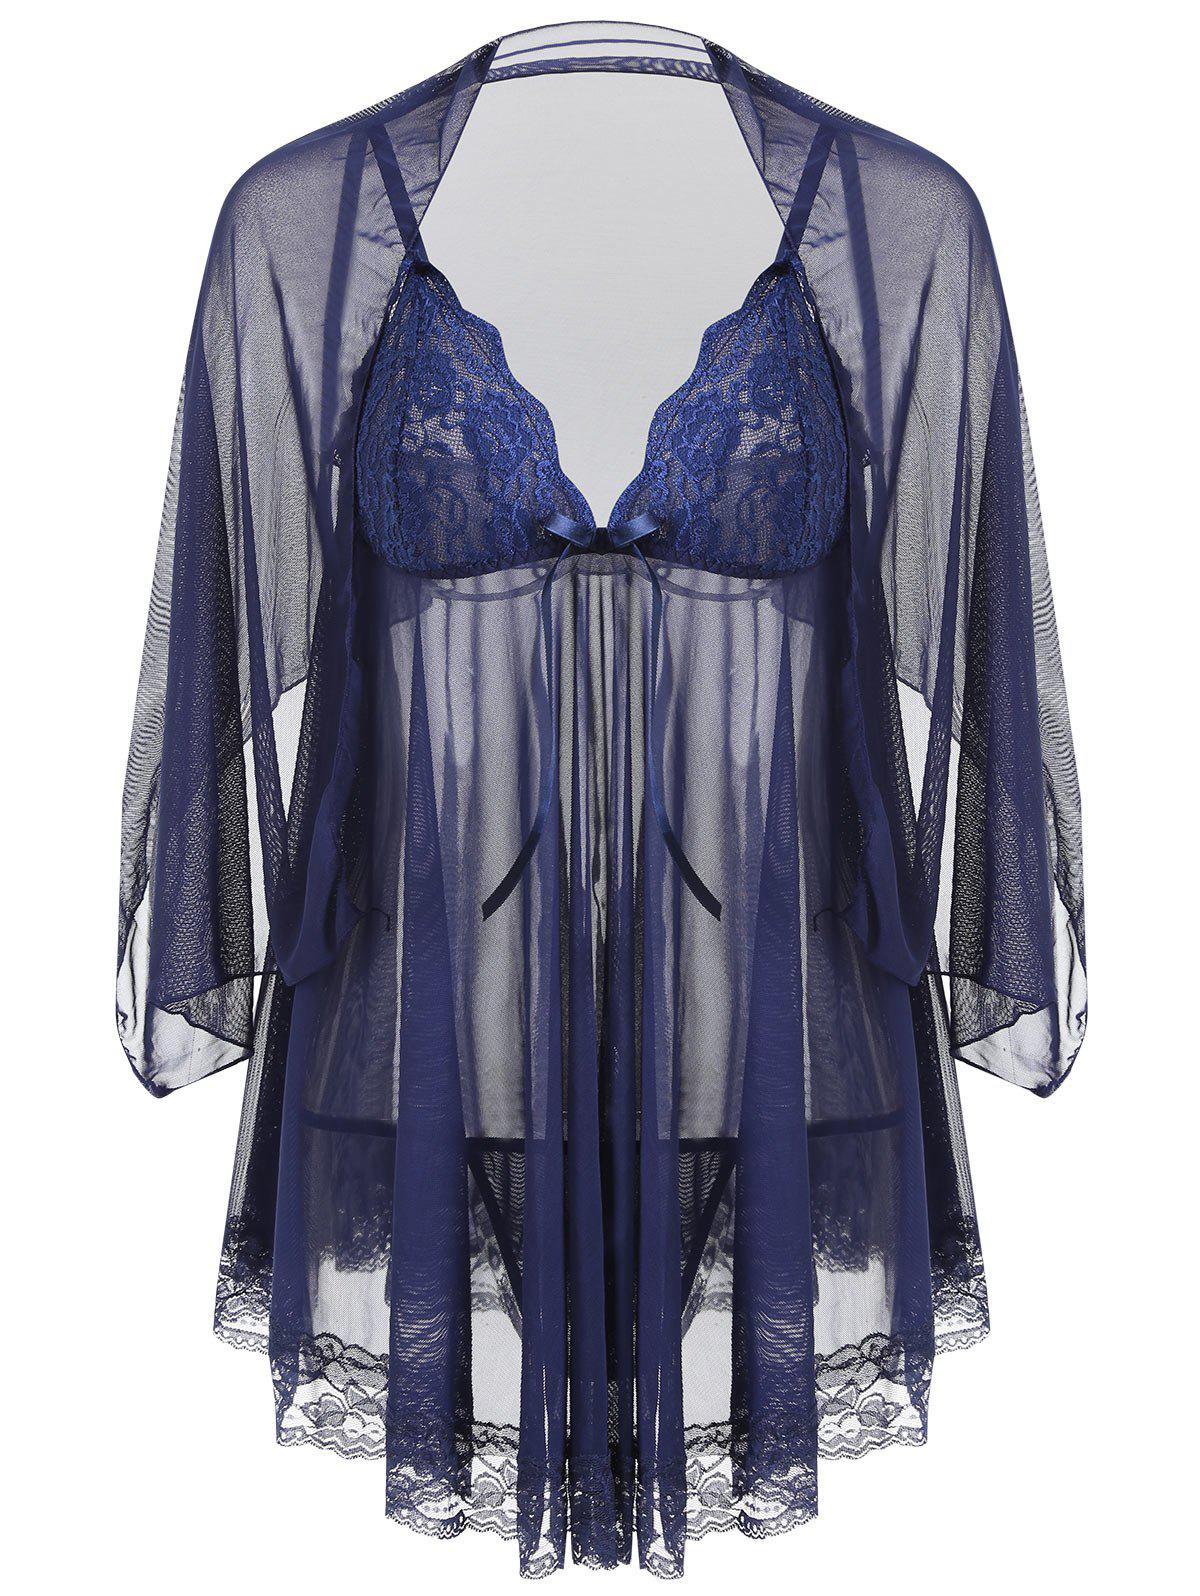 Slip See Through Mesh Babydoll - MIDNIGHT L